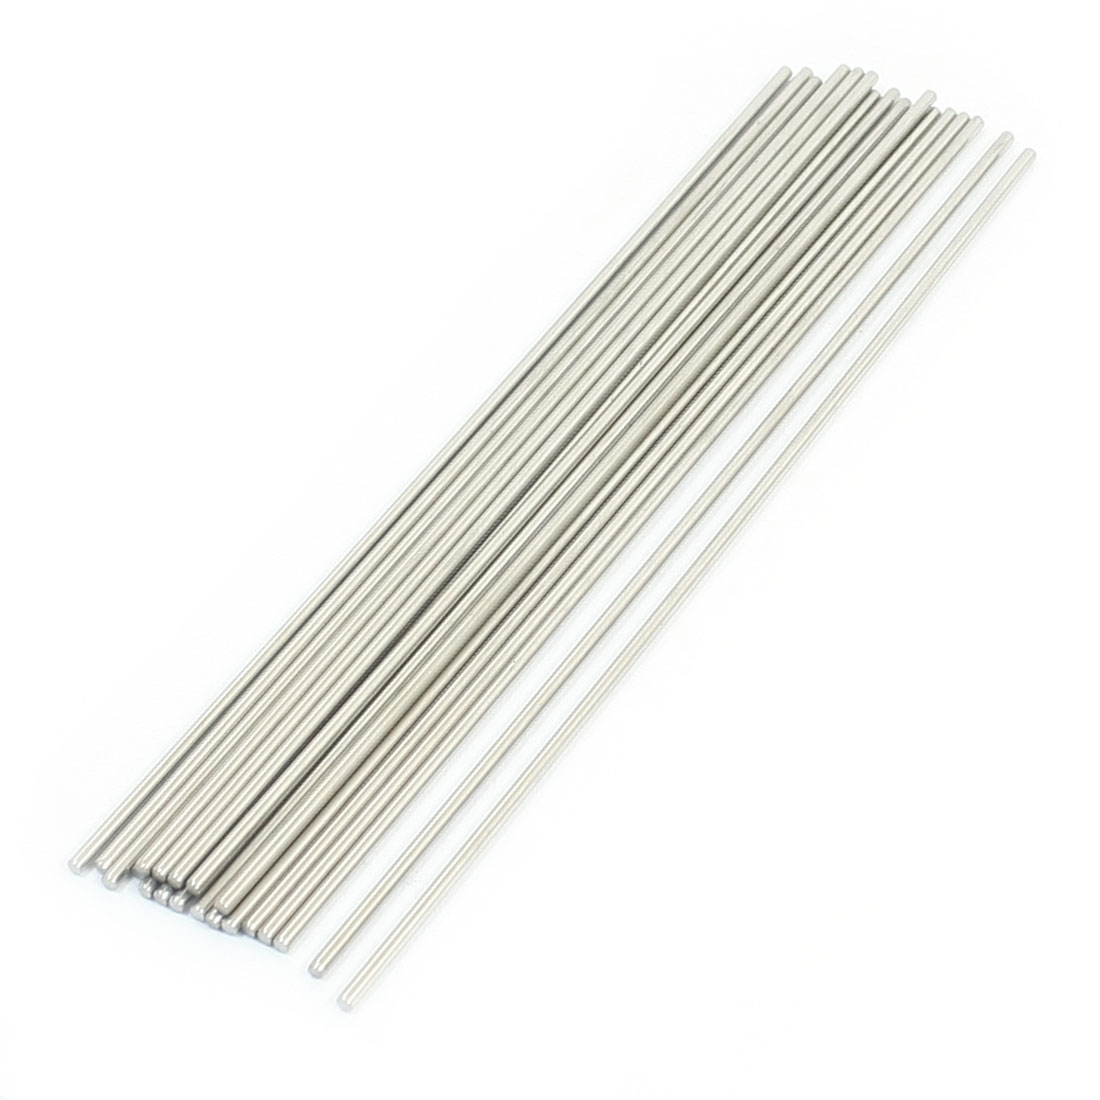 20pcs Stainless Steel Machinery Parts Component Round Bar 160x2mm